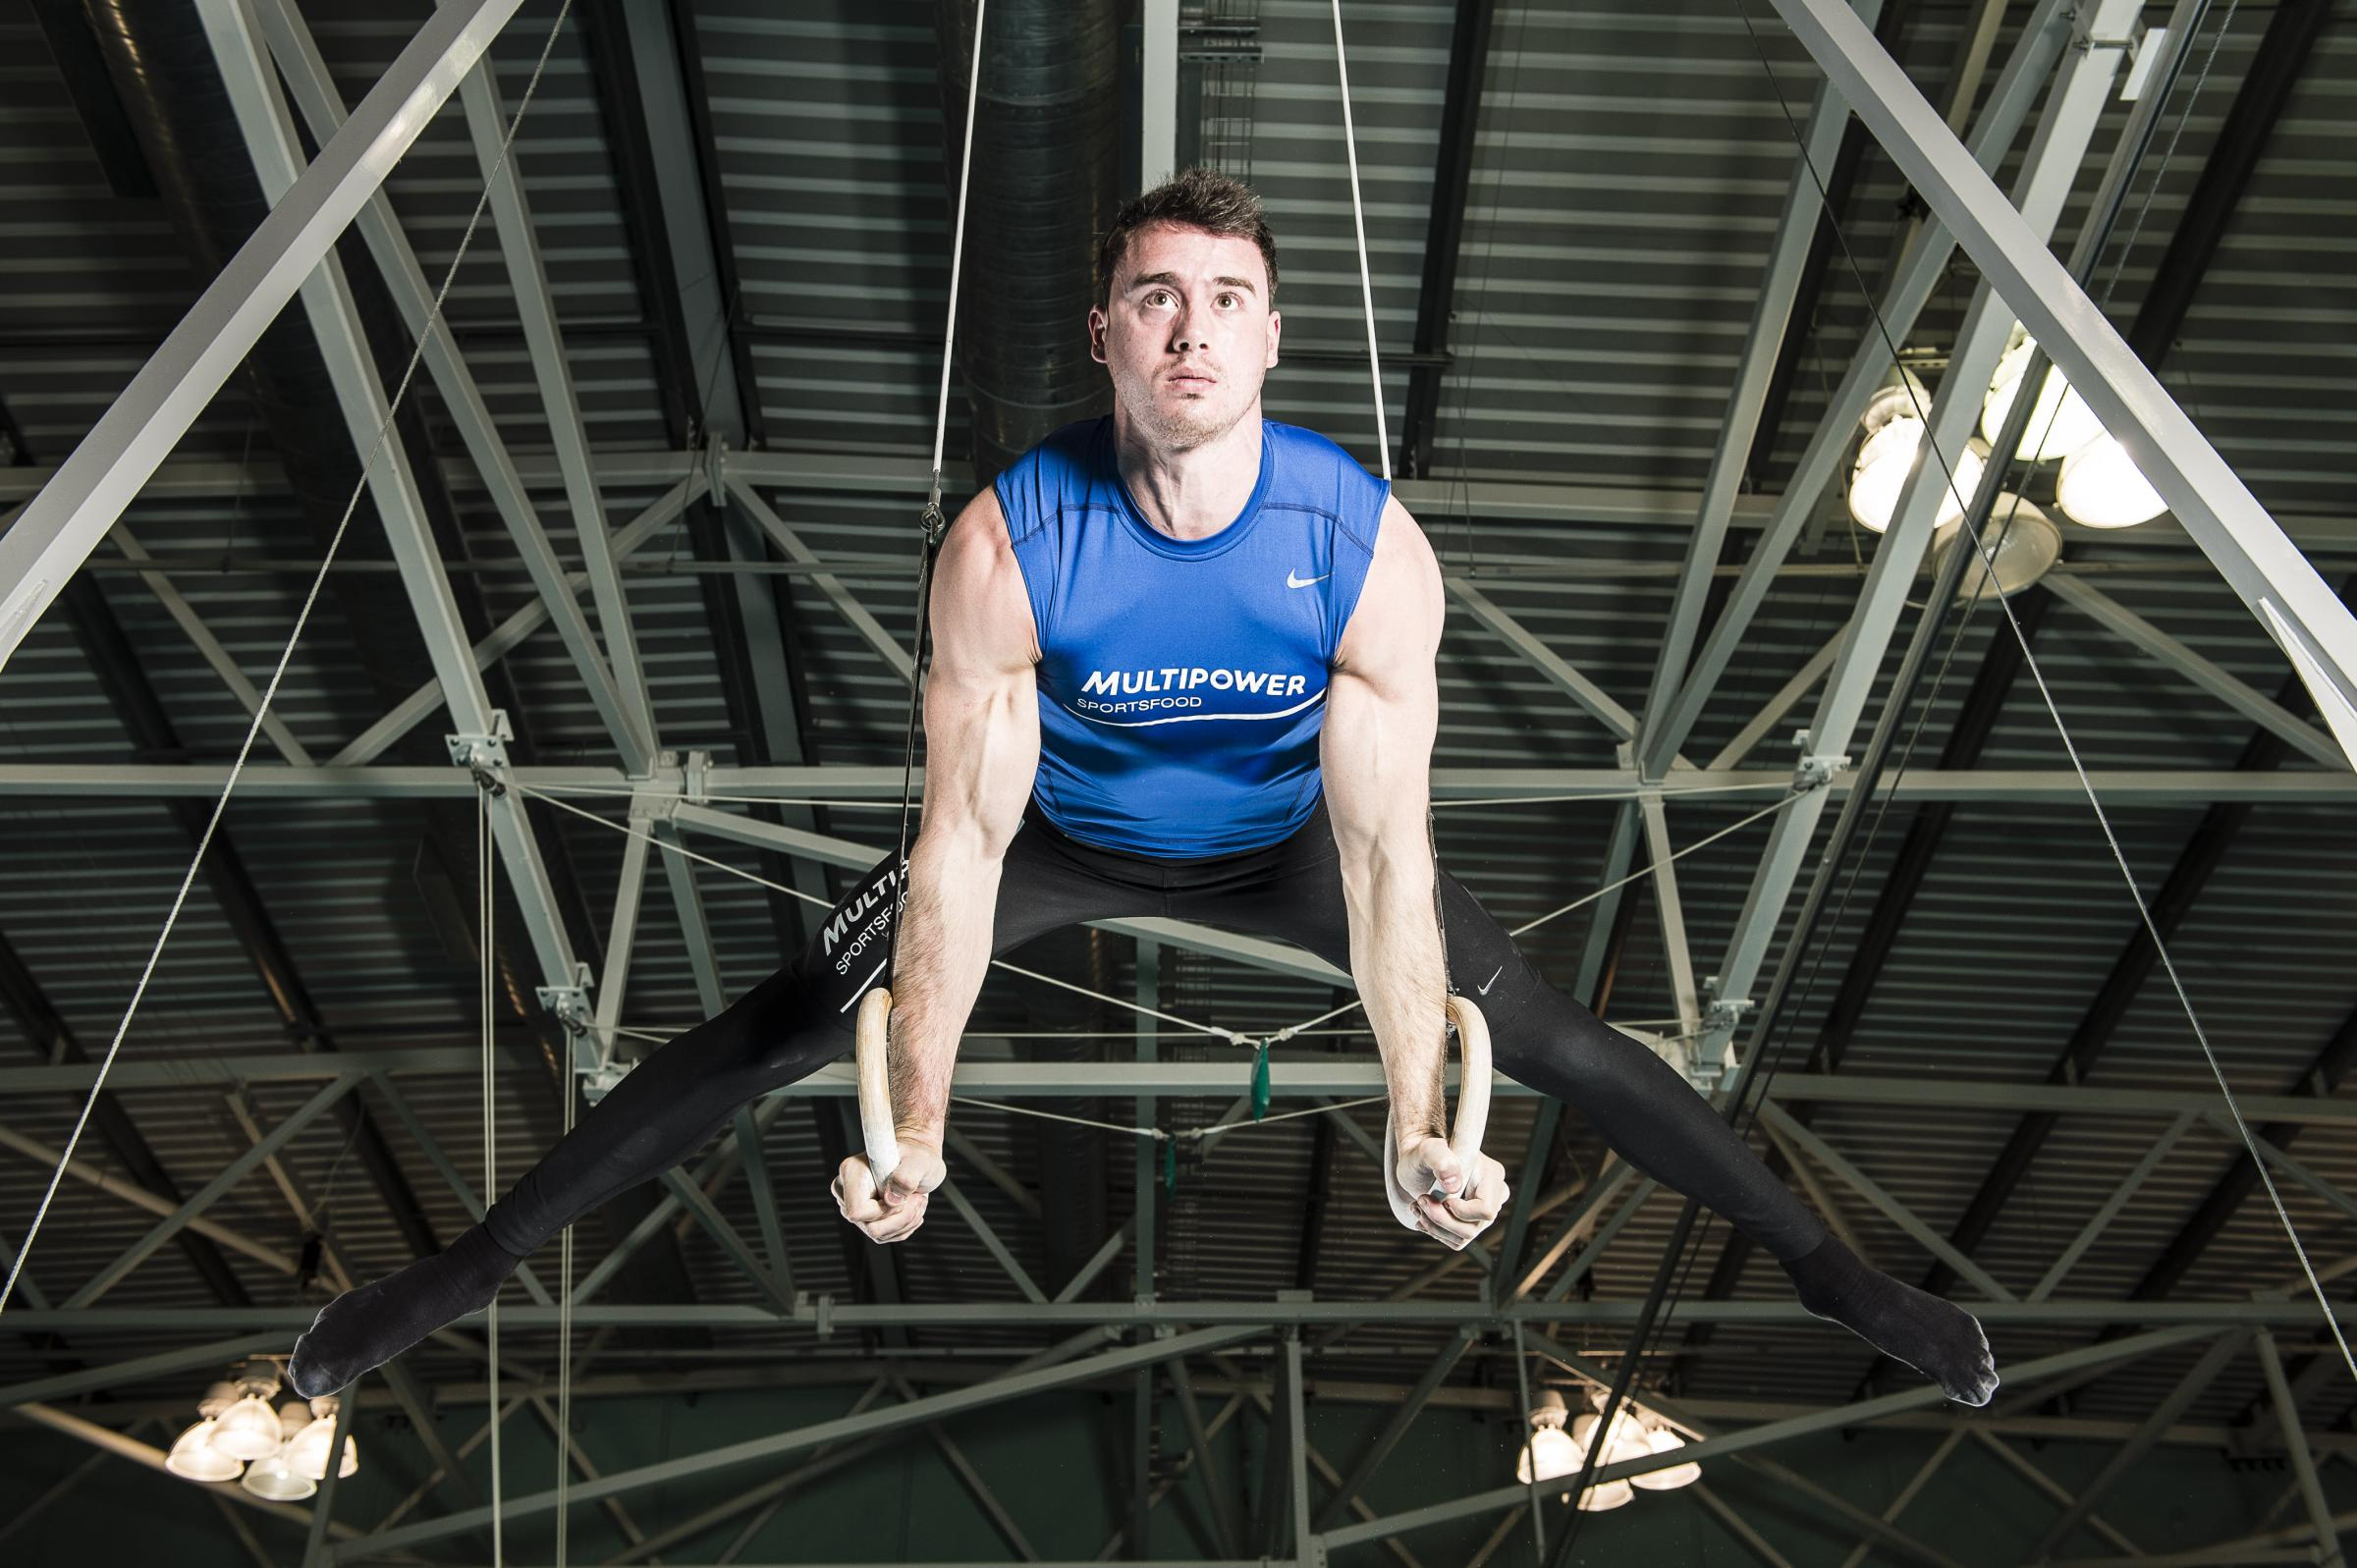 Halesowen gymnast Kristian Thomas won an individual bronze and team silver at the European Championships